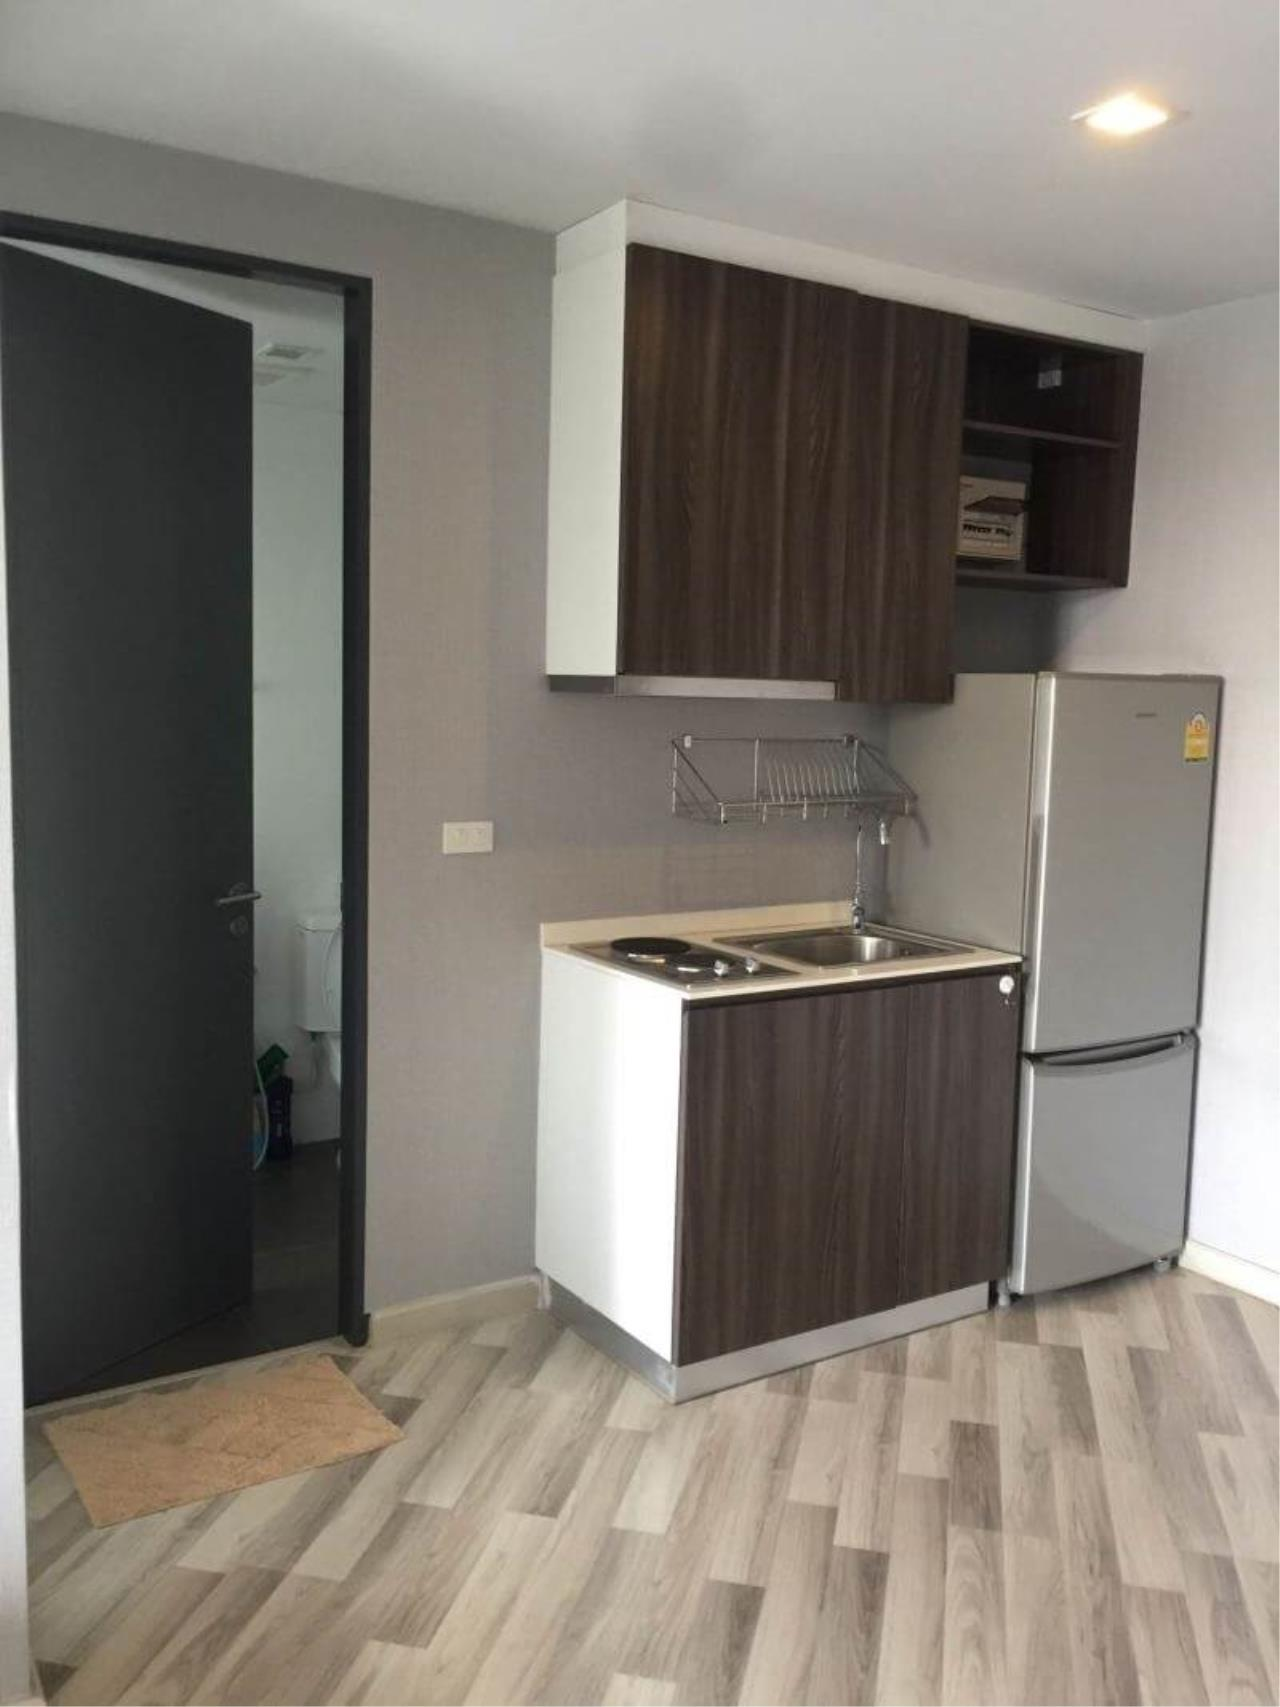 Uptown Assets  Agency's FOR RENT Vento Condo  Kaset-Navamin Building A  3rd Floor  5